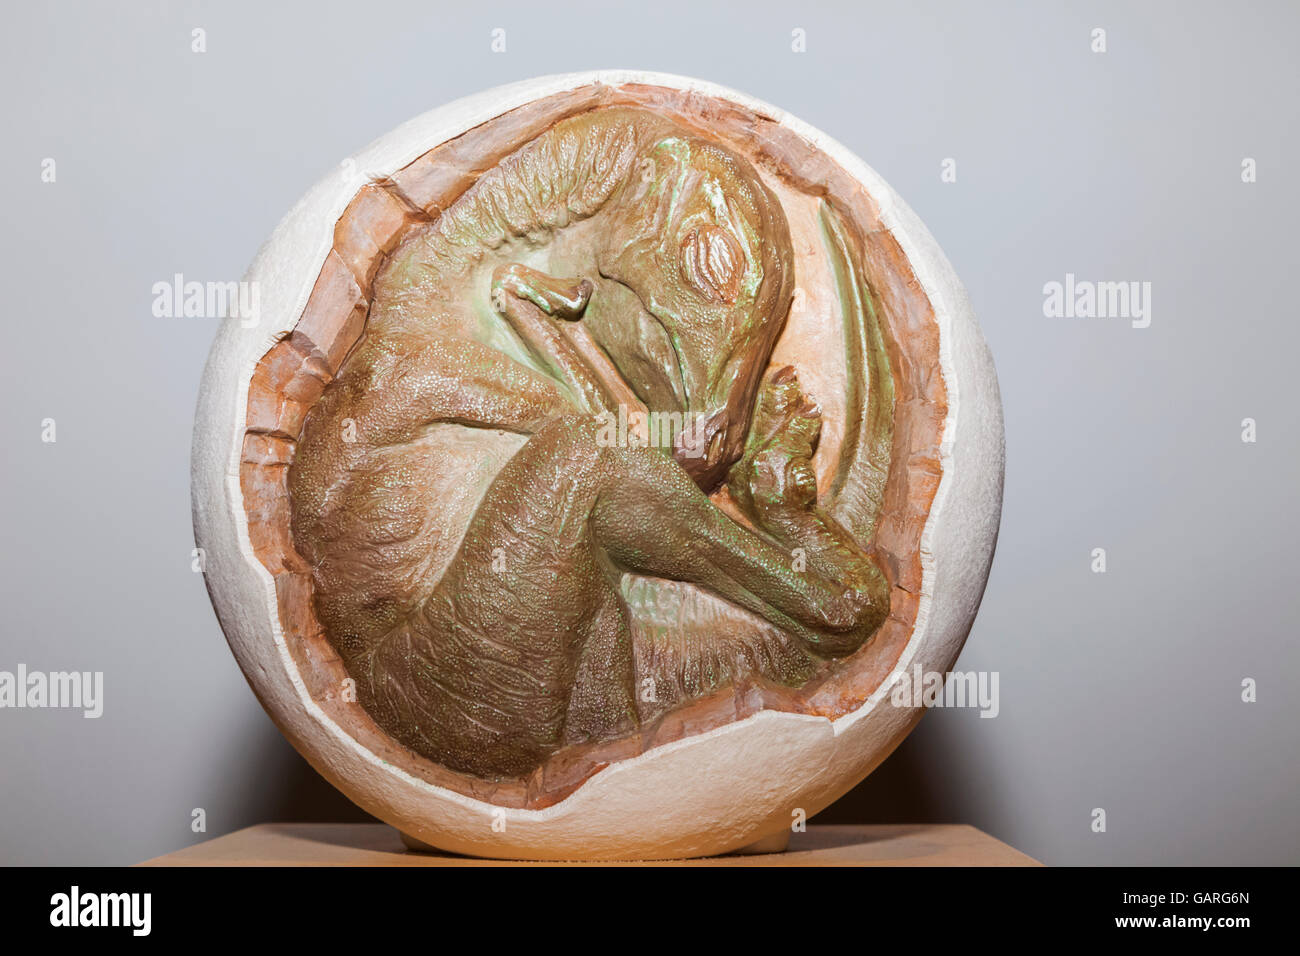 England, London, Forest Hill, Horniman Museum, Display of Hadrosaur Embryo Model - Stock Image